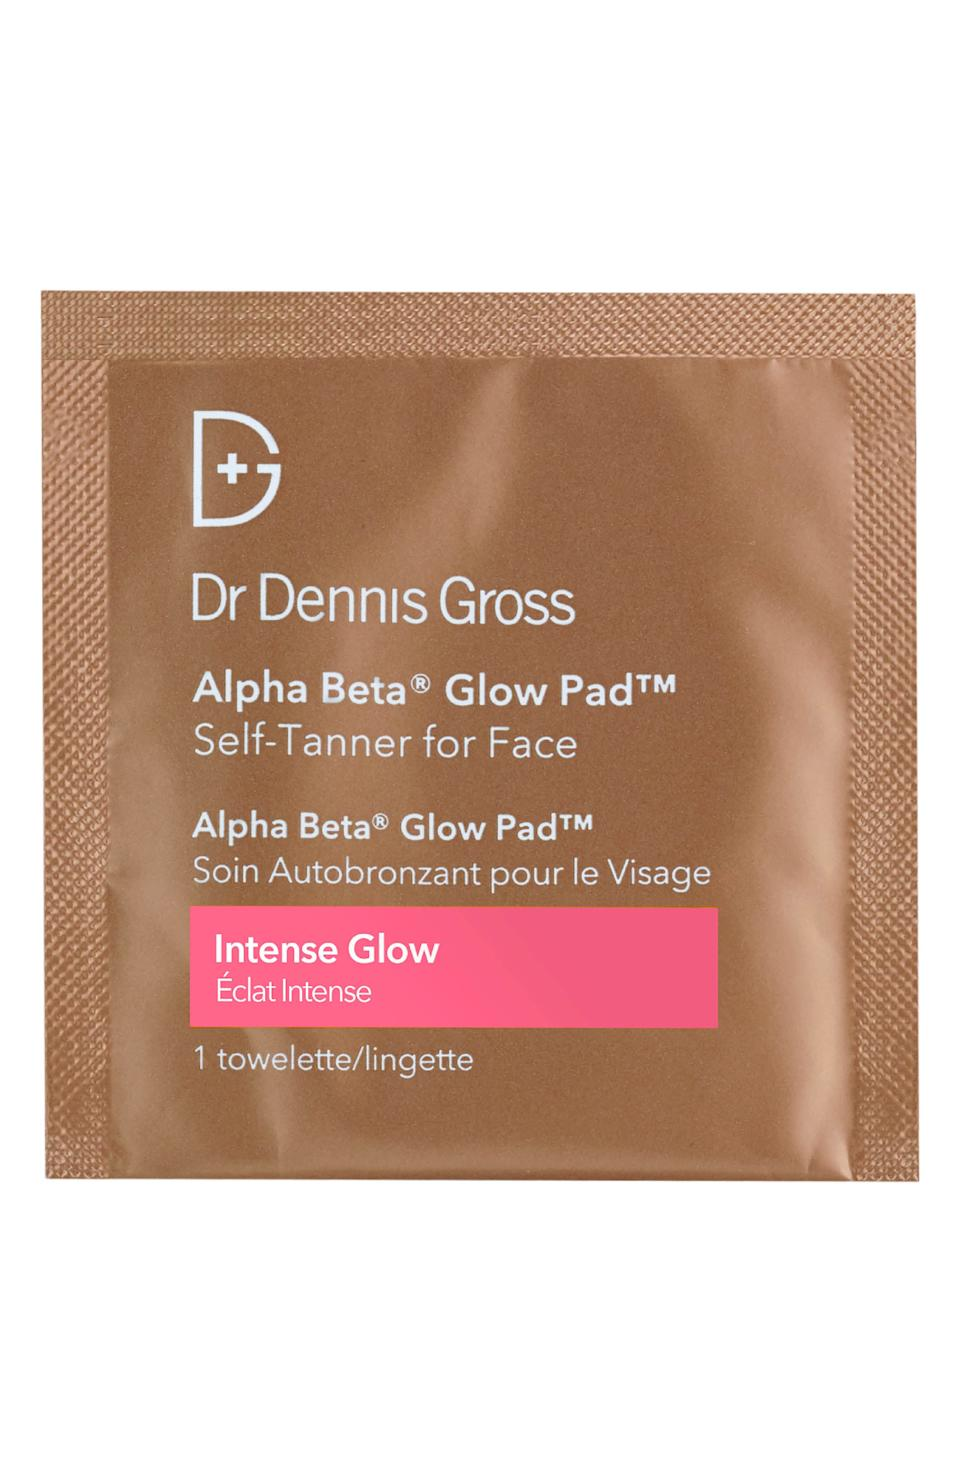 """<strong><h3>Dr. Dennis Gross Alpha Beta Glow Pad</h3></strong><br><strong>The Five-Second Self Tanner</strong><br><br>Dr. Dennis Gross's easy-to-use tan towelettes are convenient, quick, and contain good-for-you ingredients like glycolic acid, lactic acid, and willow bark extract to exfoliate and brighten skin.<br><br><strong>The Hype:</strong> 4.8 out of 5 stars and 149 reviews on <a href=""""https://shop.nordstrom.com/s/dr-dennis-gross-skincare-alpha-beta-glow-pad-for-face/3168806"""" rel=""""nofollow noopener"""" target=""""_blank"""" data-ylk=""""slk:Nordstrom"""" class=""""link rapid-noclick-resp"""">Nordstrom</a><br><br><strong>Reviewers Say: </strong>""""I tried a few face tanning products; this is probably the best one. It didn't turn out orange, and there were no streaks. Oh, and it didn't make me break out which is huge!!"""" — Tanka, Nordstrom Reviewer<br><br><strong>Dr. Dennis Gross</strong> Skincare Alpha Beta® Glow Pad™ for Face, $, available at <a href=""""https://go.skimresources.com/?id=30283X879131&url=https%3A%2F%2Fshop.nordstrom.com%2Fs%2Fdr-dennis-gross-skincare-alpha-beta-glow-pad-for-face%2F3168806"""" rel=""""nofollow noopener"""" target=""""_blank"""" data-ylk=""""slk:Nordstrom"""" class=""""link rapid-noclick-resp"""">Nordstrom</a>"""